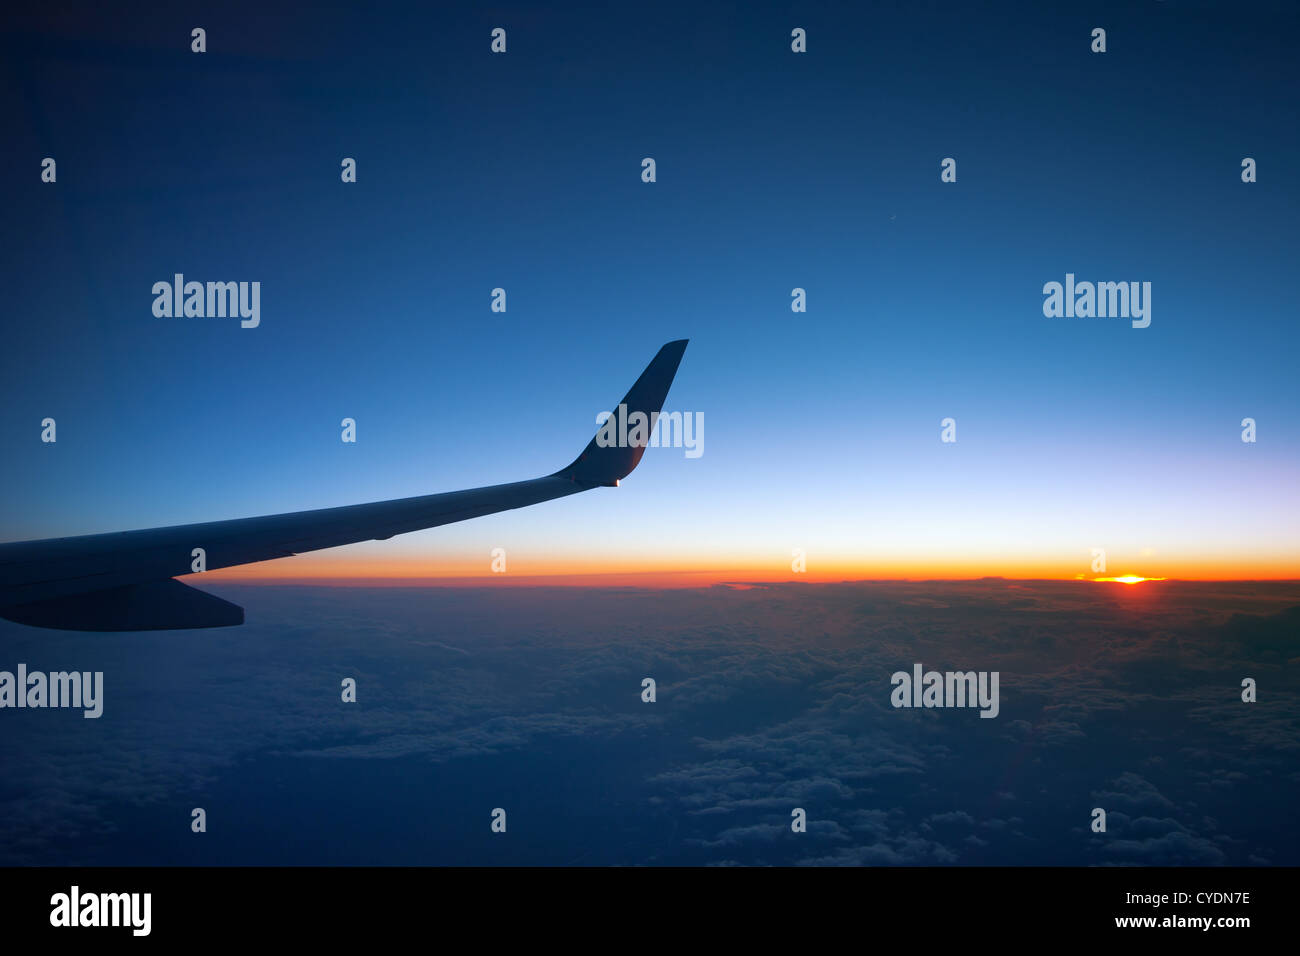 Above the clouds - sunset with airplane wing - Stock Image